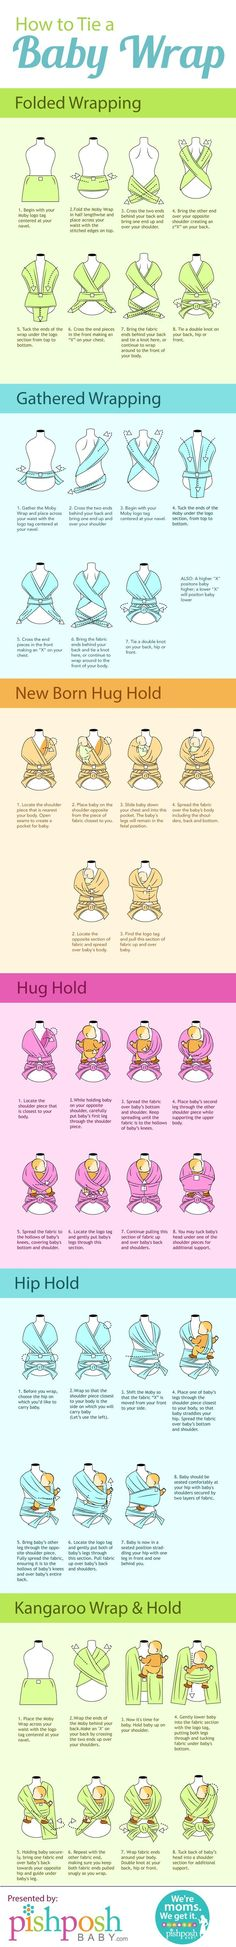 How to Tie a Baby Wrap [by PishPosh Baby -- via Tipsographic] #tipsographic                                                                                                                                                                                 More